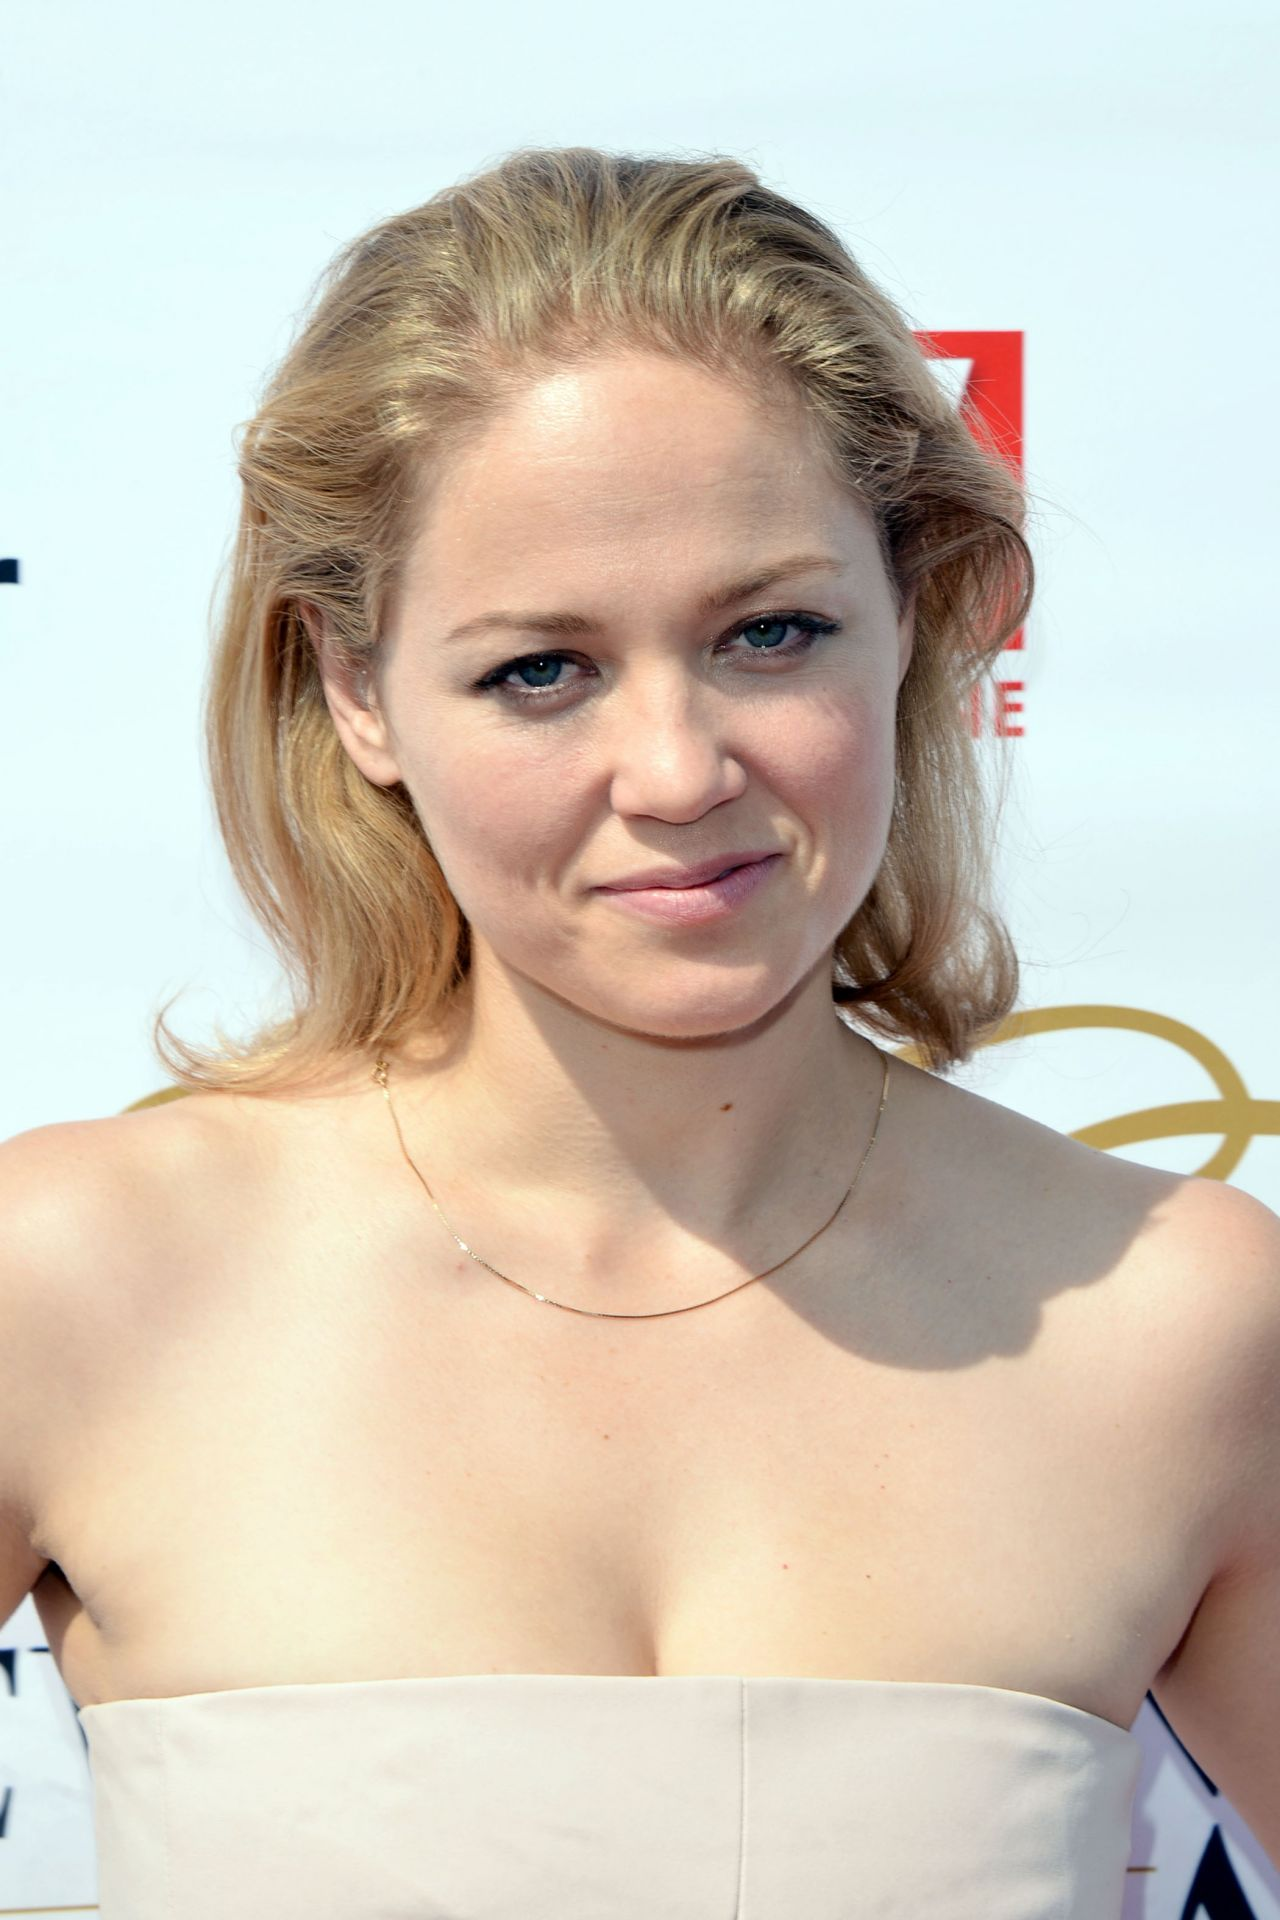 2019 Erika Christensen naked (13 photos), Ass, Sideboobs, Feet, swimsuit 2006